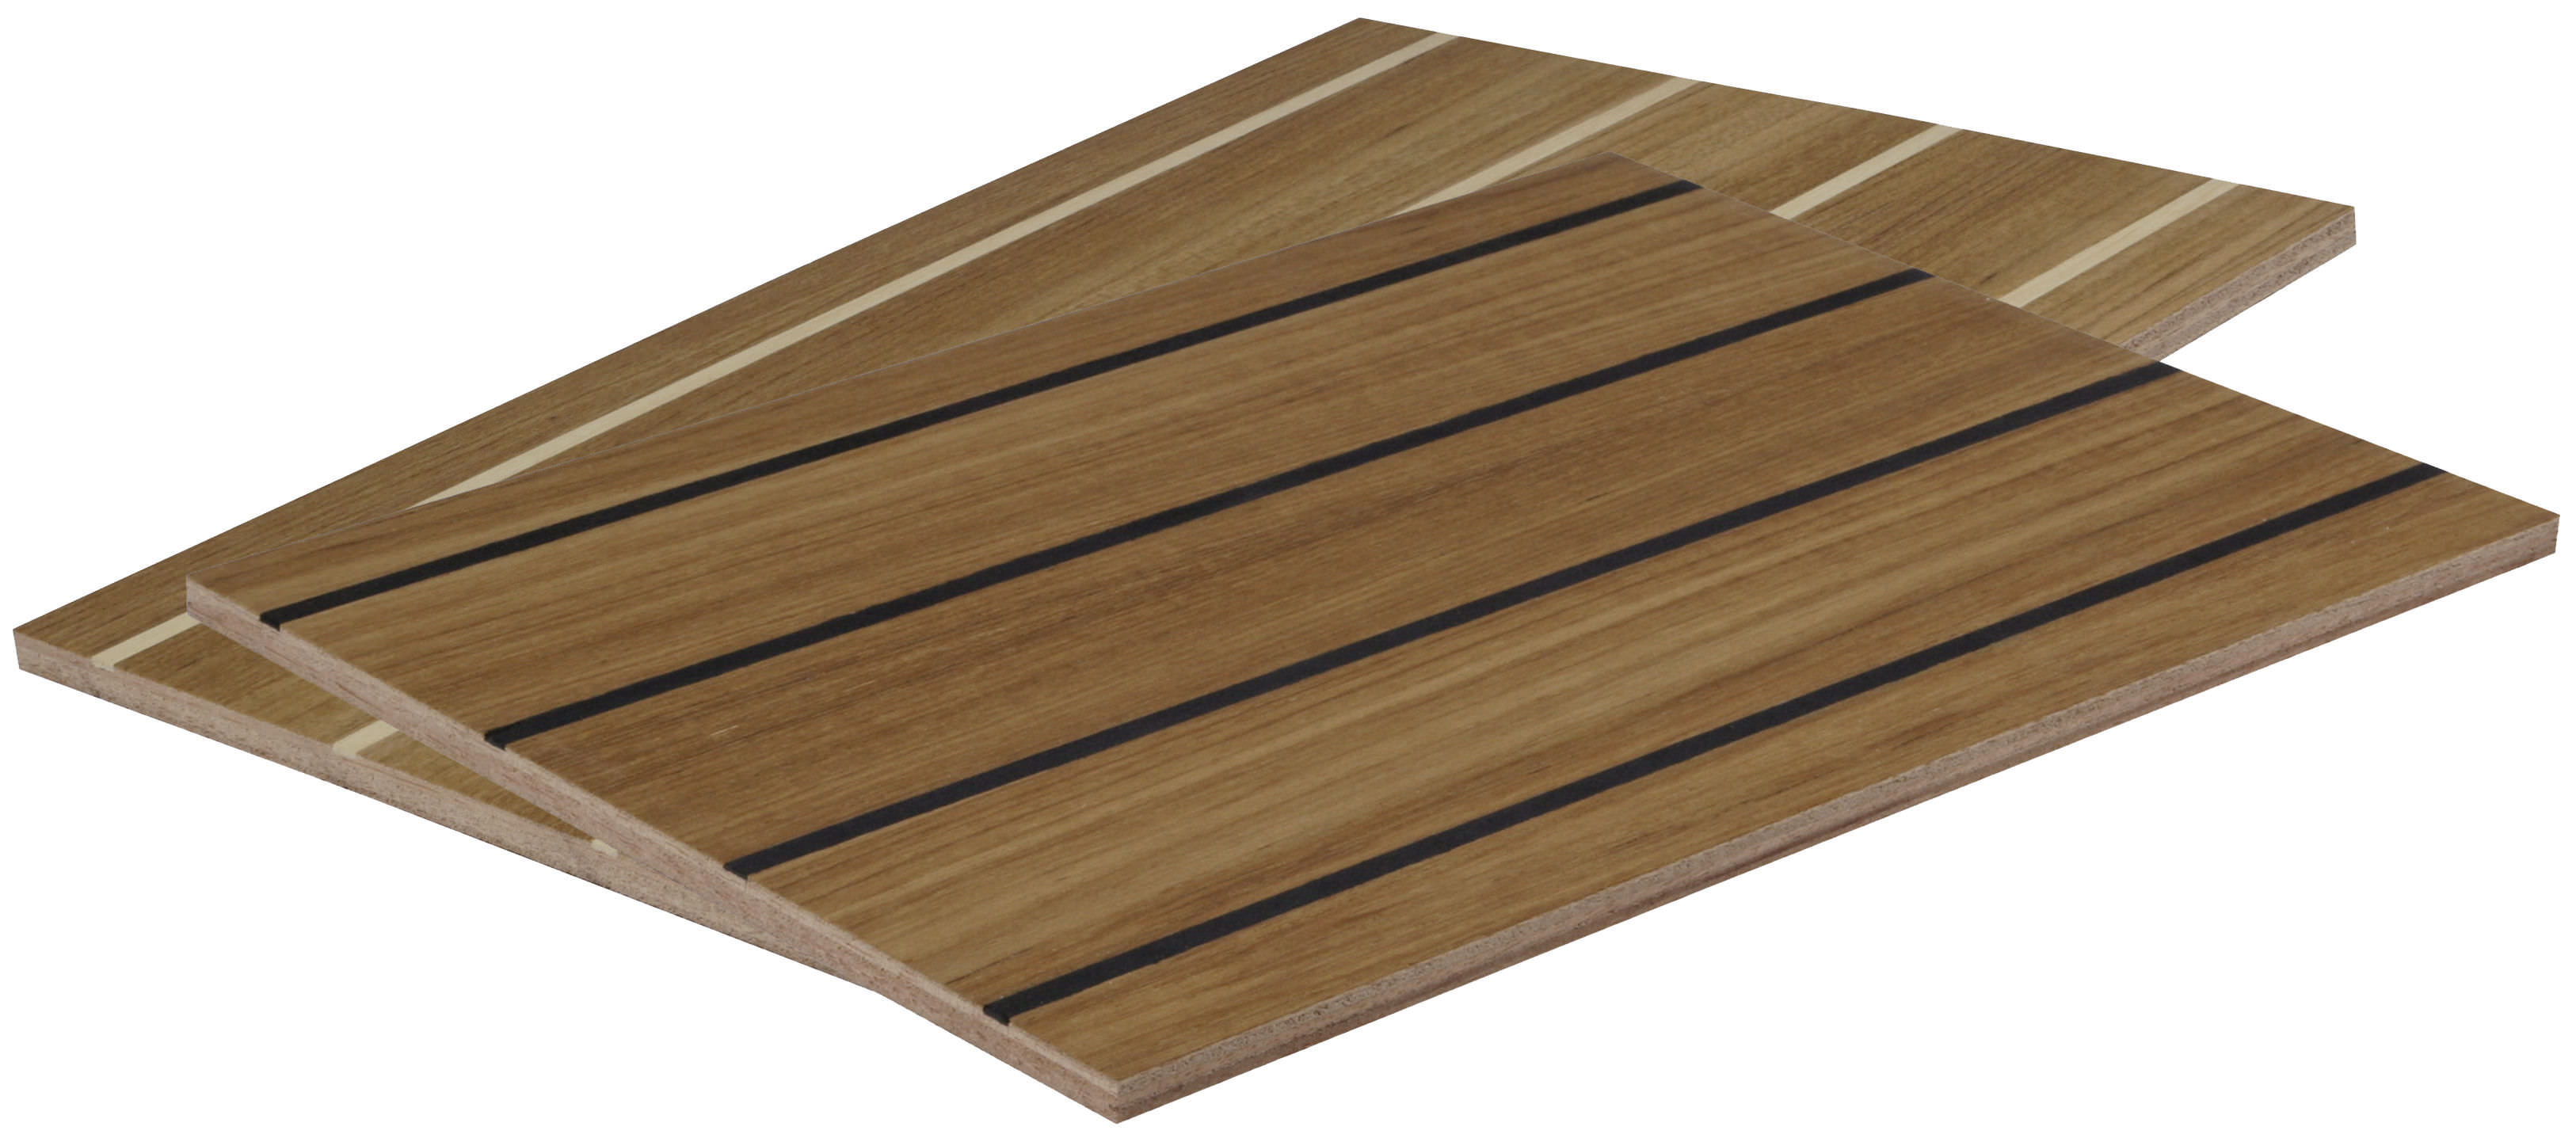 Decking Panels Interior Floor Panel Boat Decking Plywood Ls Ds Rs Van